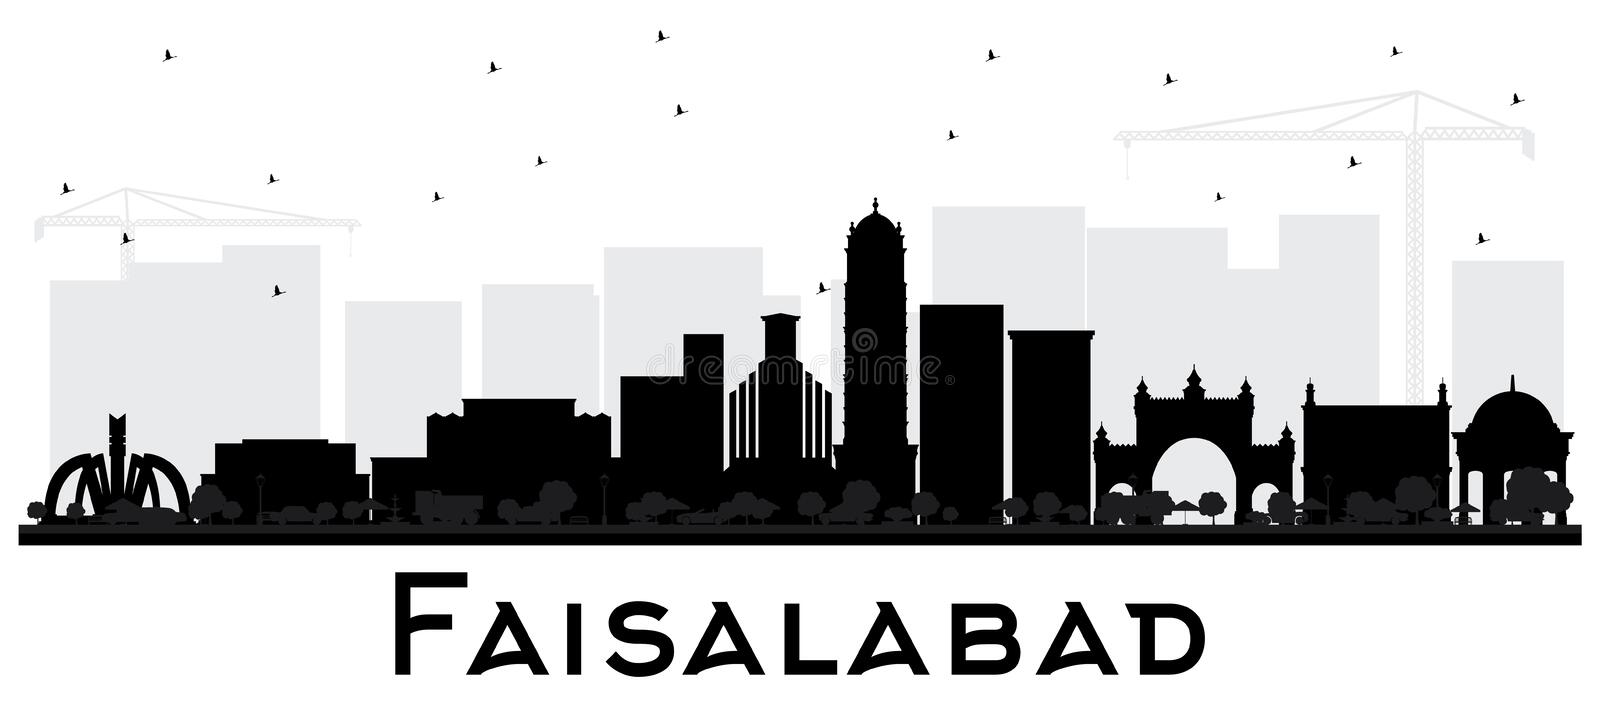 Faisalabad Pakistan City Skyline Silhouette with Black Buildings. Isolated on White. Vector Illustration. Business Travel and Tourism Concept with Modern vector illustration